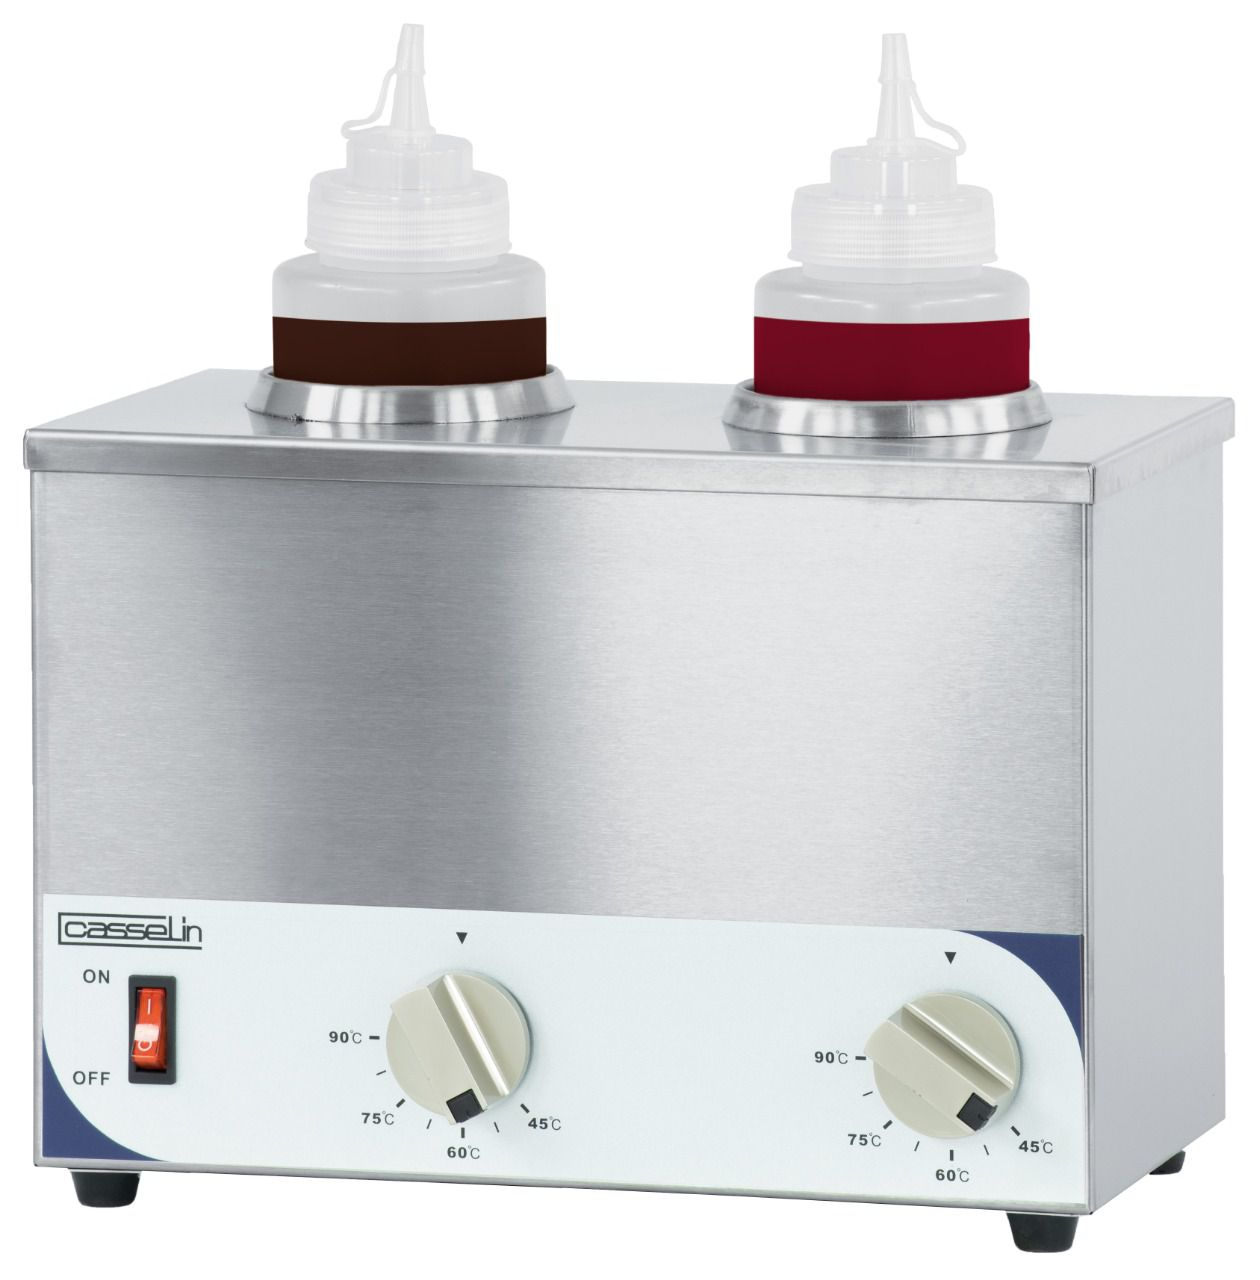 Chauffe-sauce 2 bouteilles, 230v, 2x200w